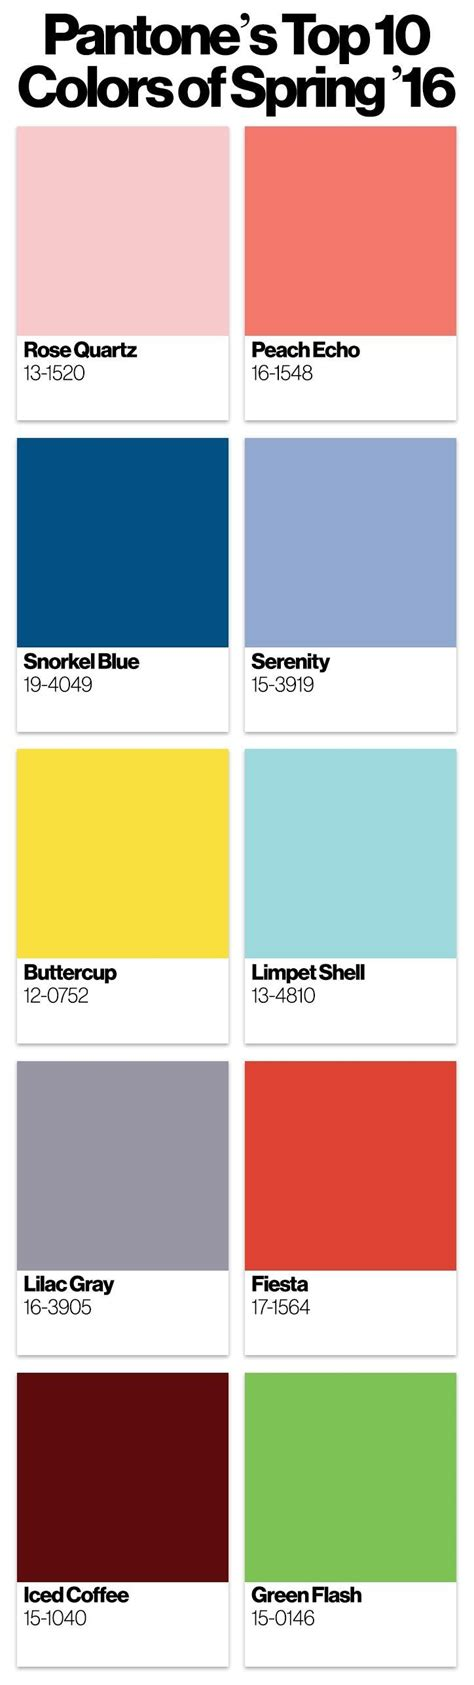 pantone color schemes ultimate designer s color guide for 2016 inspiration